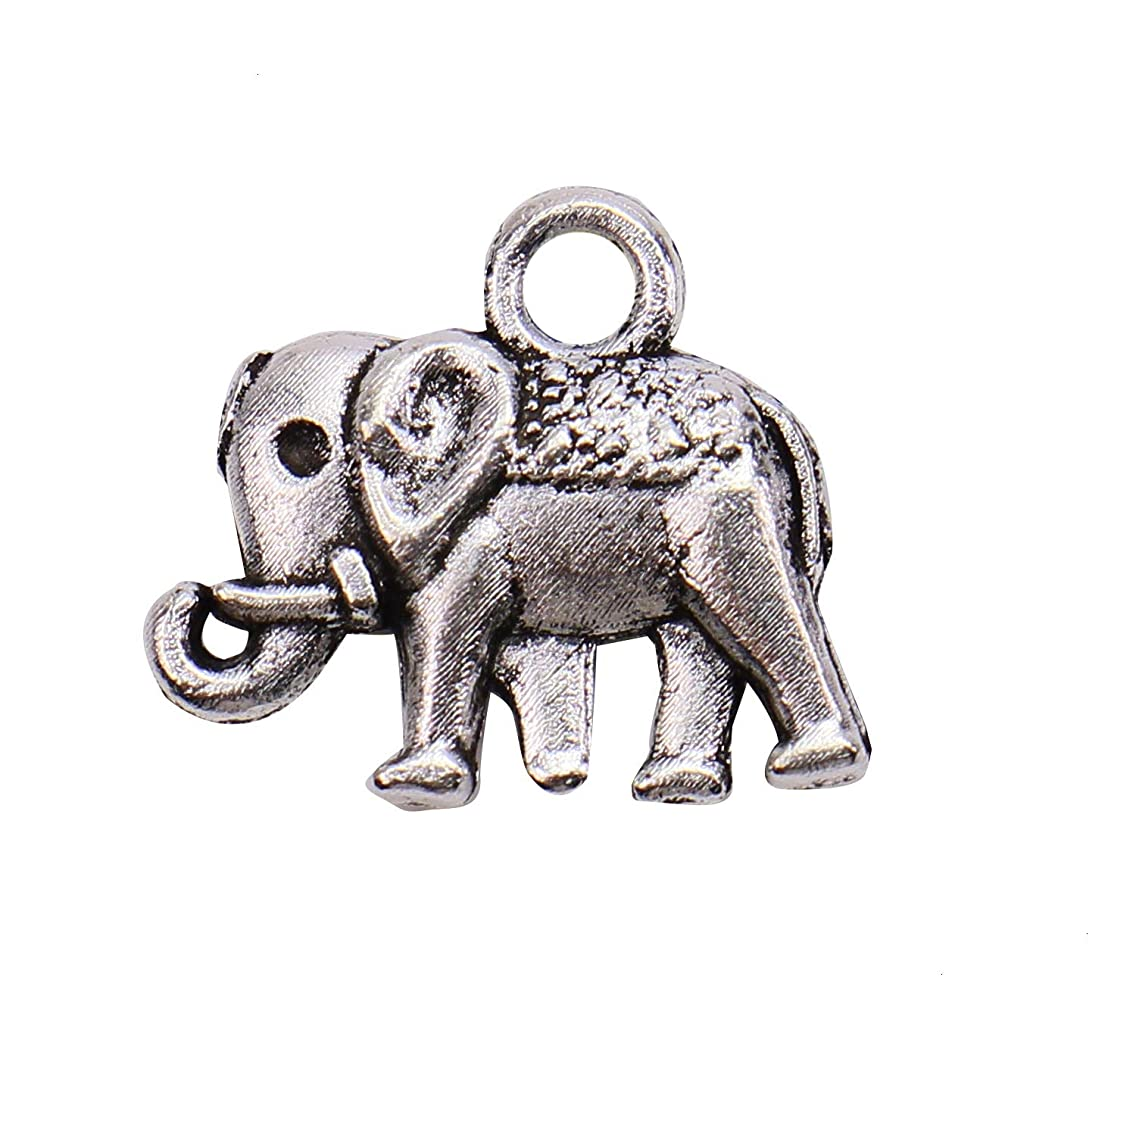 Monrocco 100 Pack Silver Lucky Elephant Charms Pendant Bulk for Bracelet Jewelry Making Jewelry Crafts Supplies